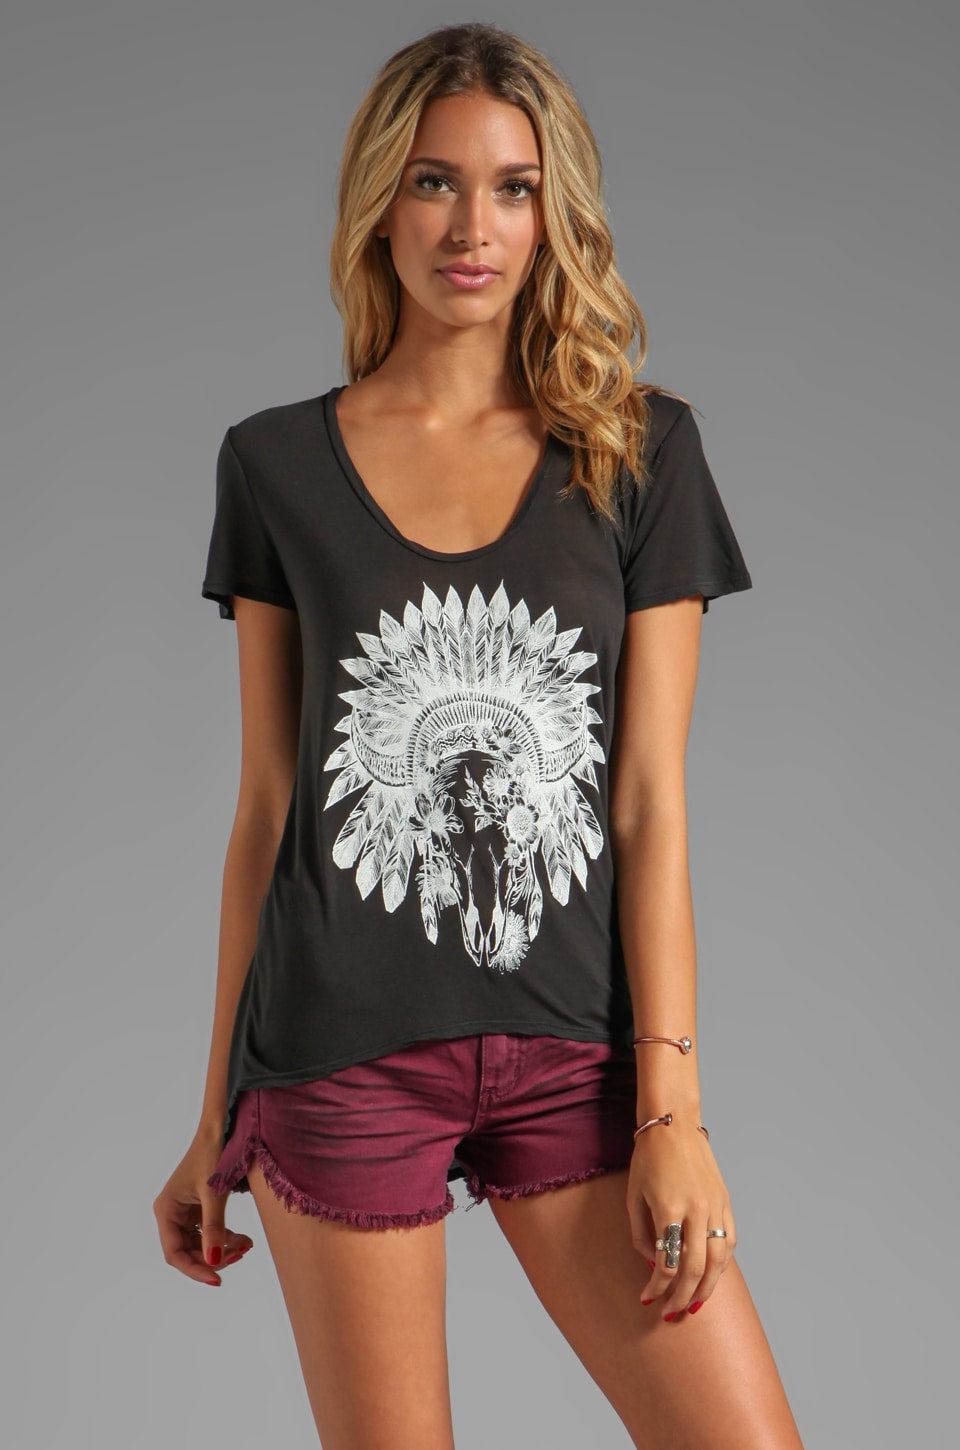 291 Floral Skull Short Sleeve Uneven Hem Tee in Vintage Black